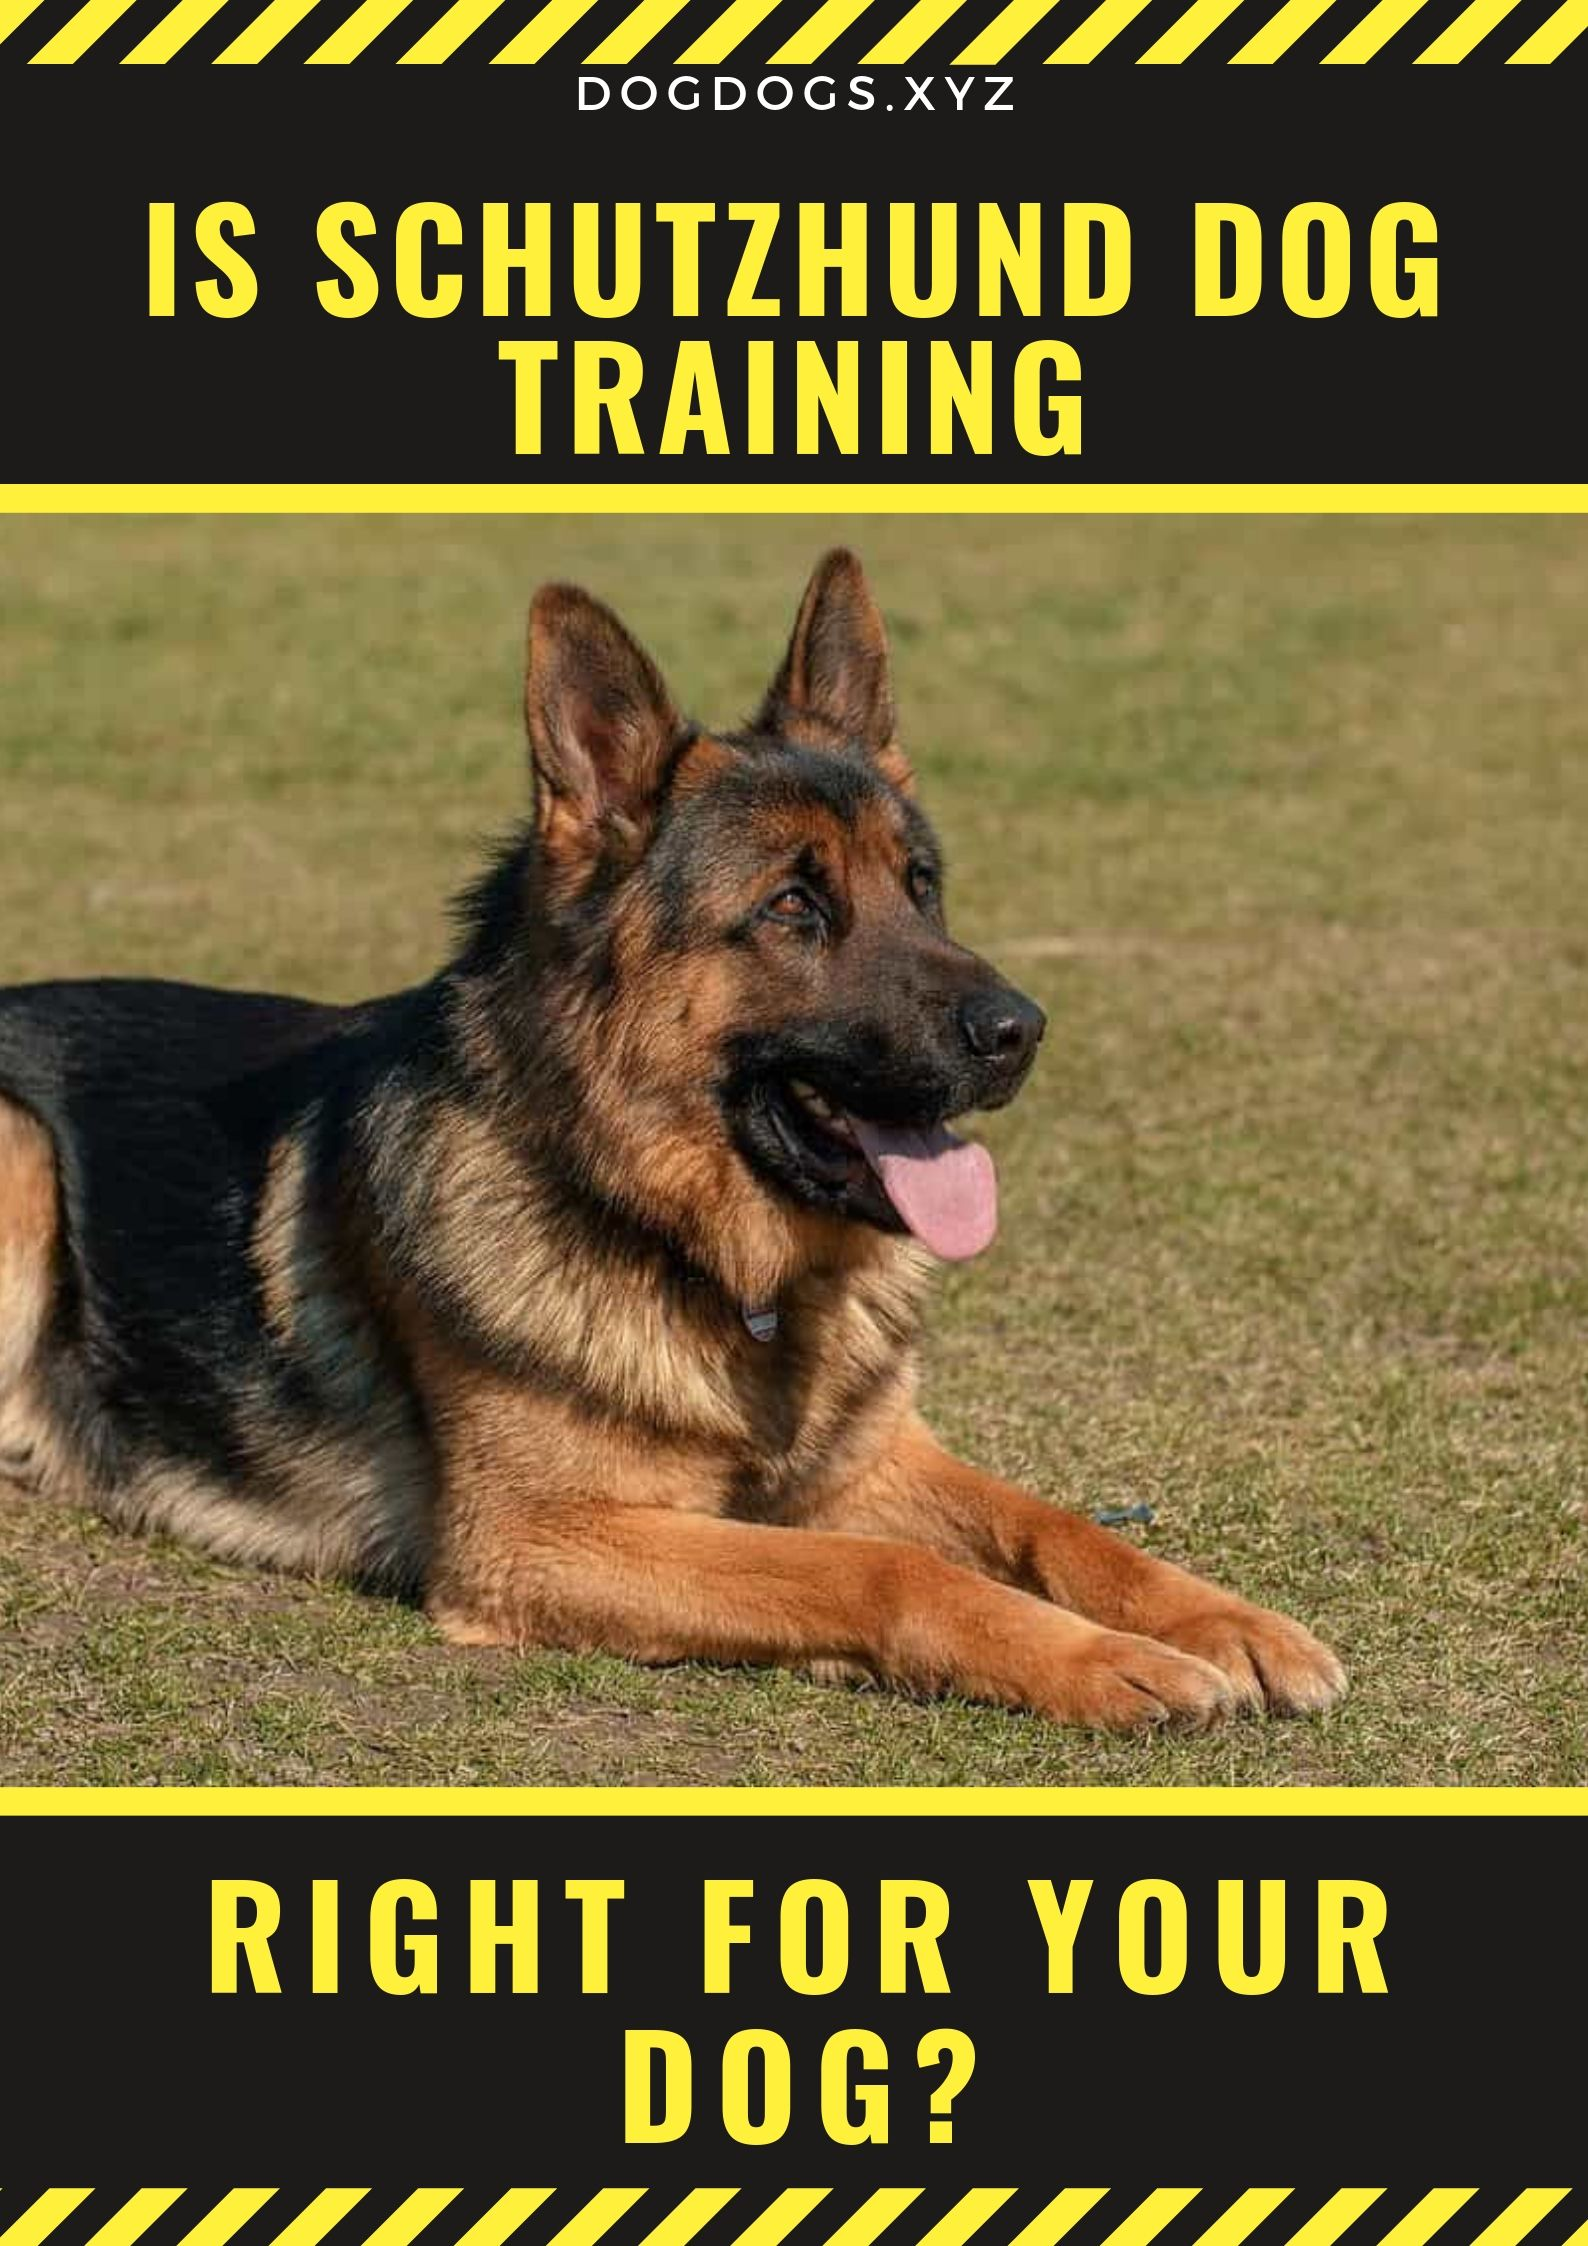 The Training Is Very Rigorous And While Many Dog Breeds Are